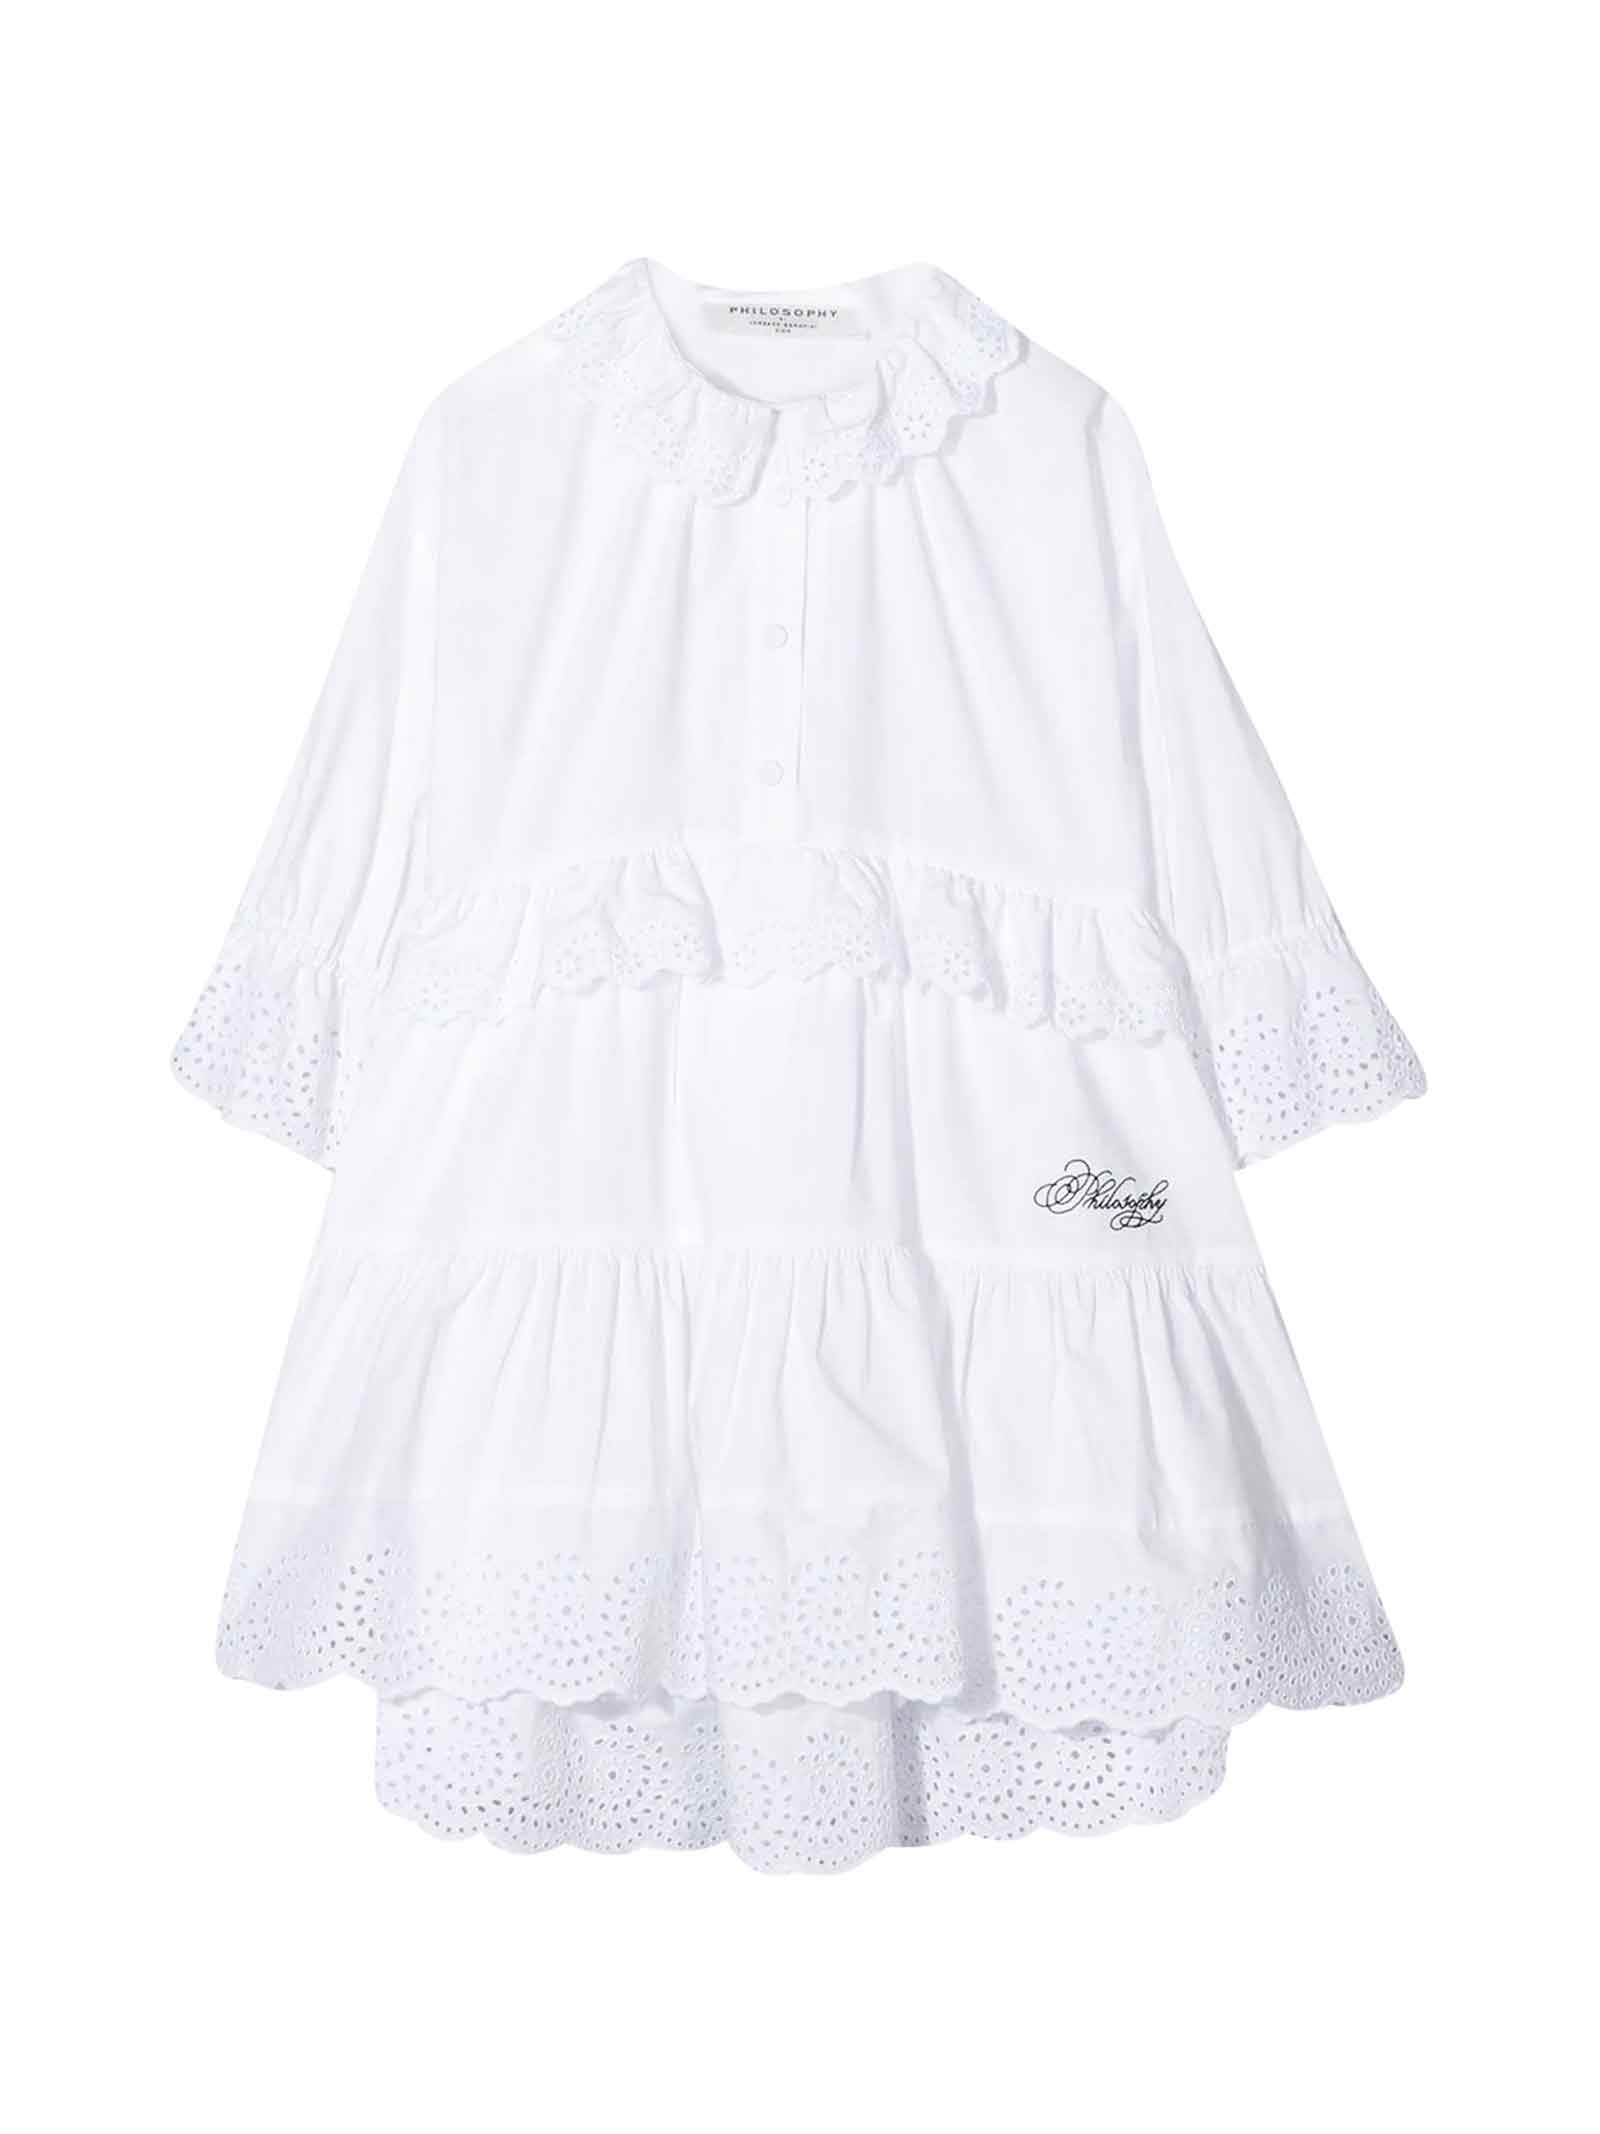 Buy Philosophy di Lorenzo Serafini Kids White Flared Dress With Laces online, shop Philosophy di Lorenzo Serafini Kids with free shipping